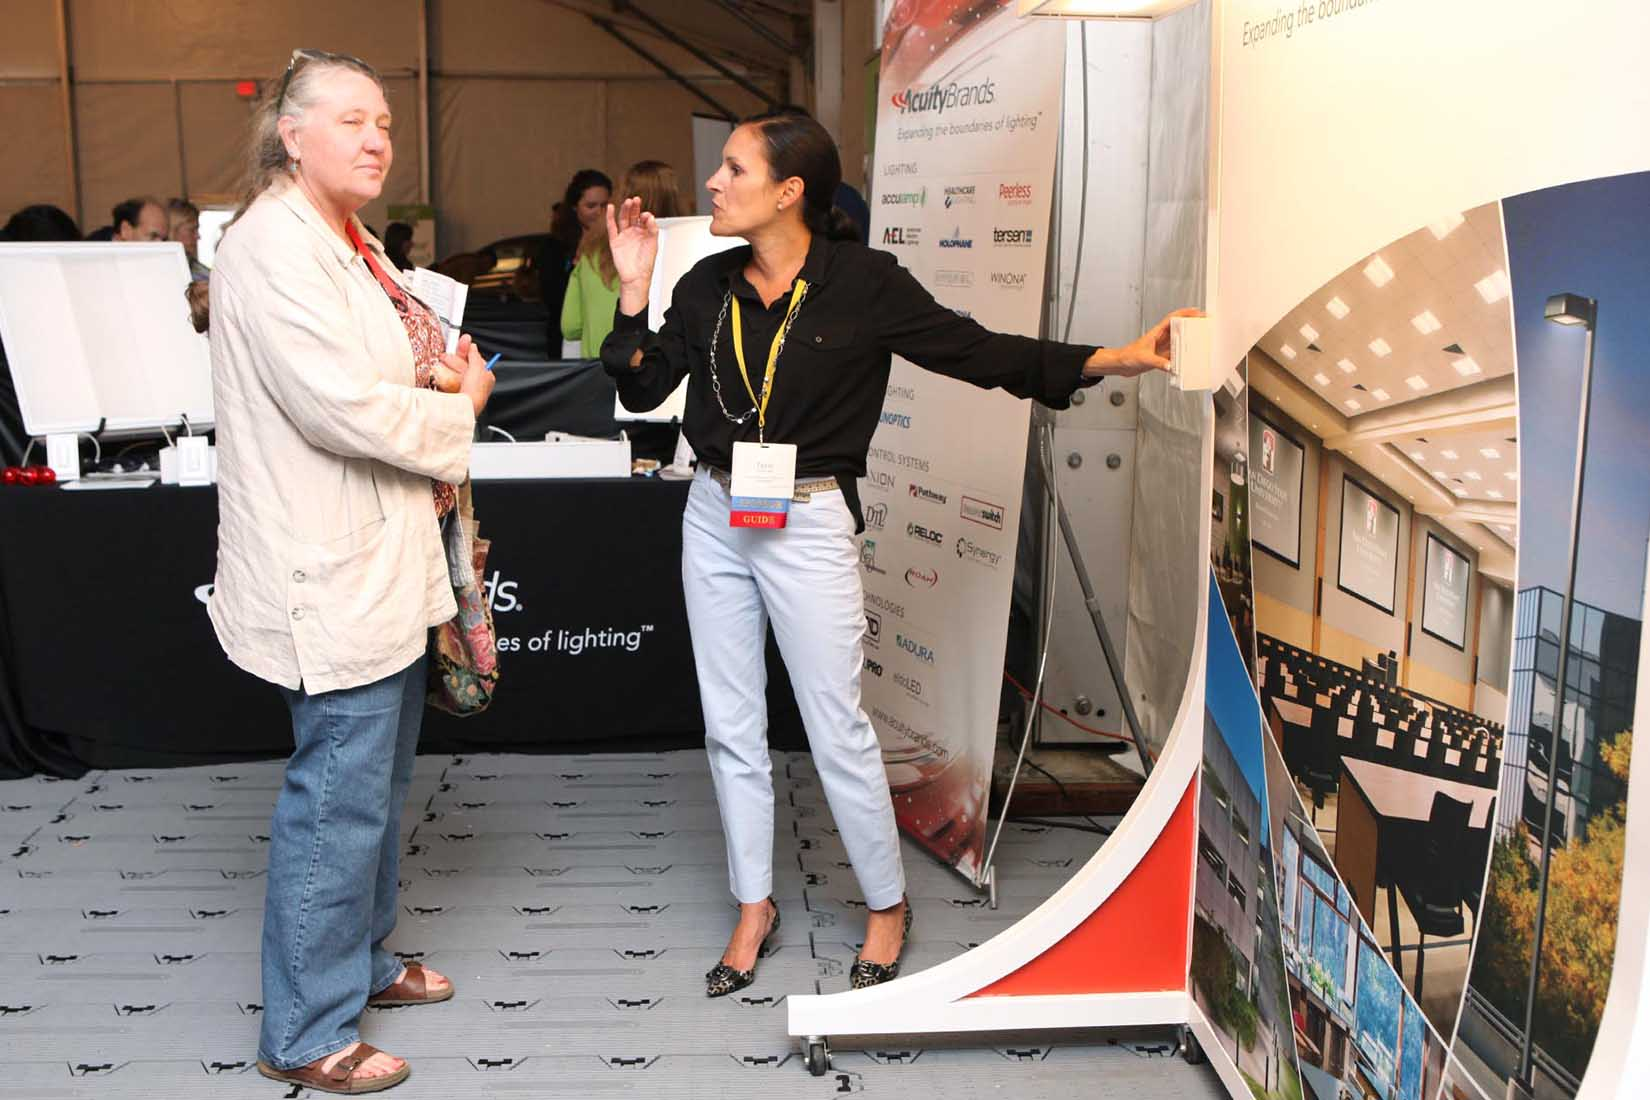 vendor explains to an attendee